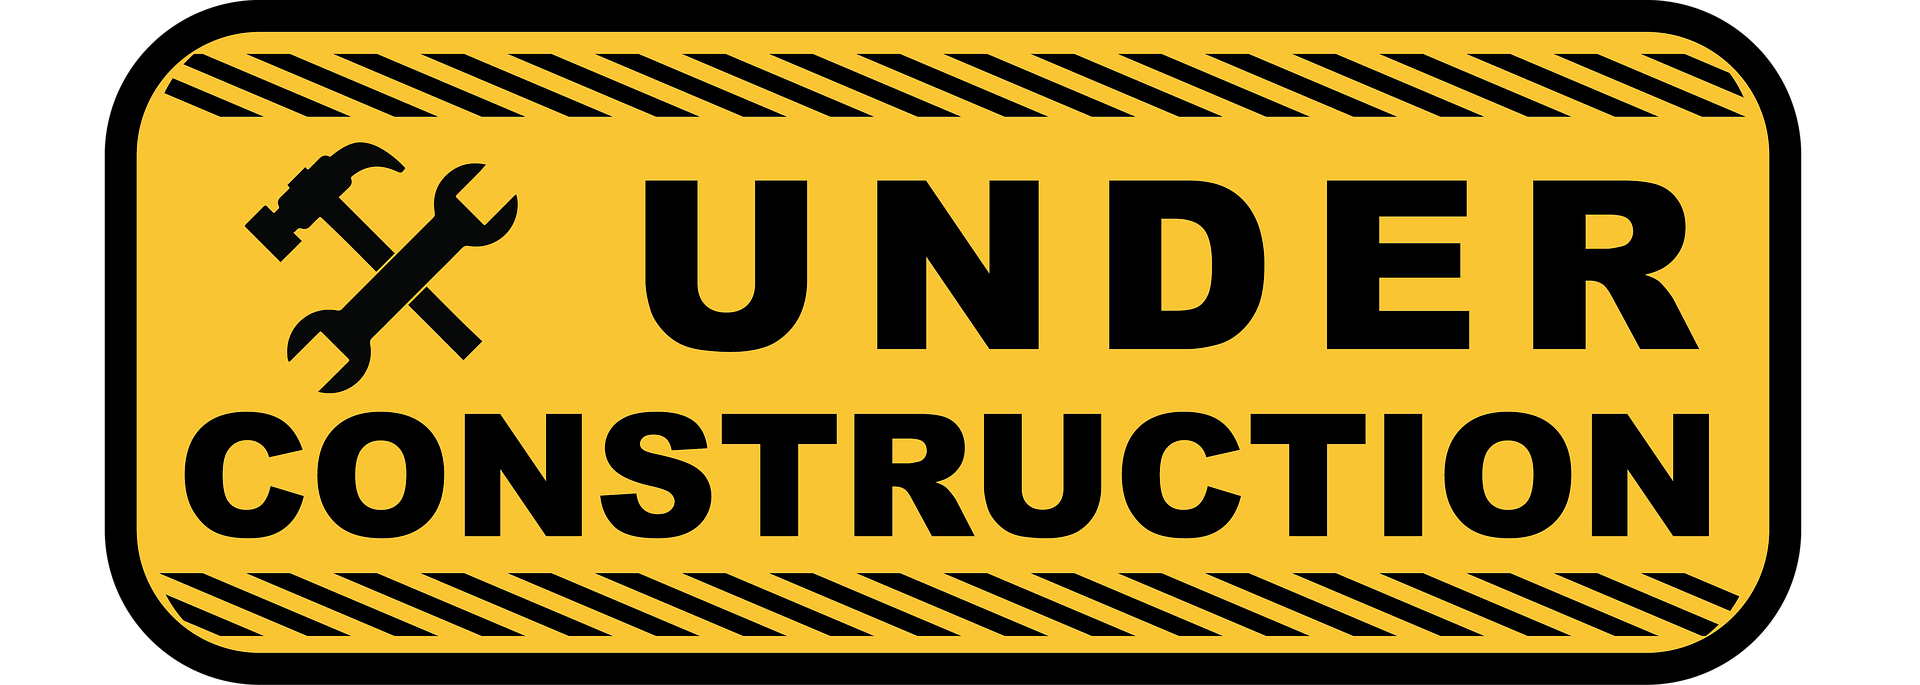 under-construction-2408062_1920.png